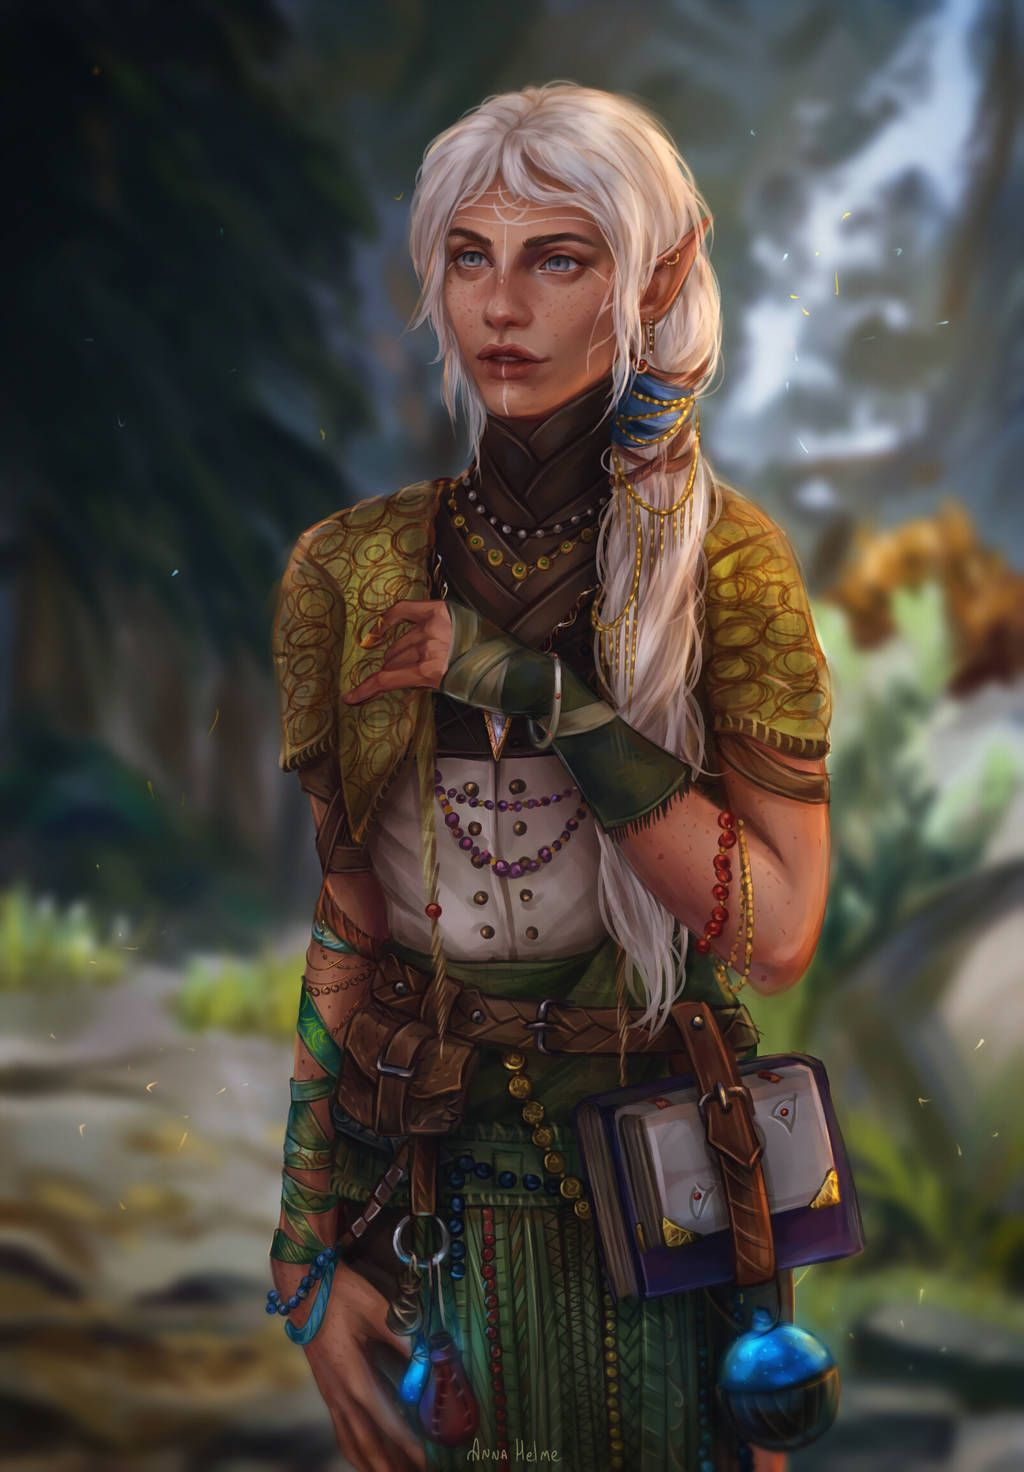 F High Elf Wizard Cloak Magic Books Potions Mountains Mixed Forest Halani Lavellan By An Dungeons And Dragons Characters Elves Fantasy Fantasy Character Design